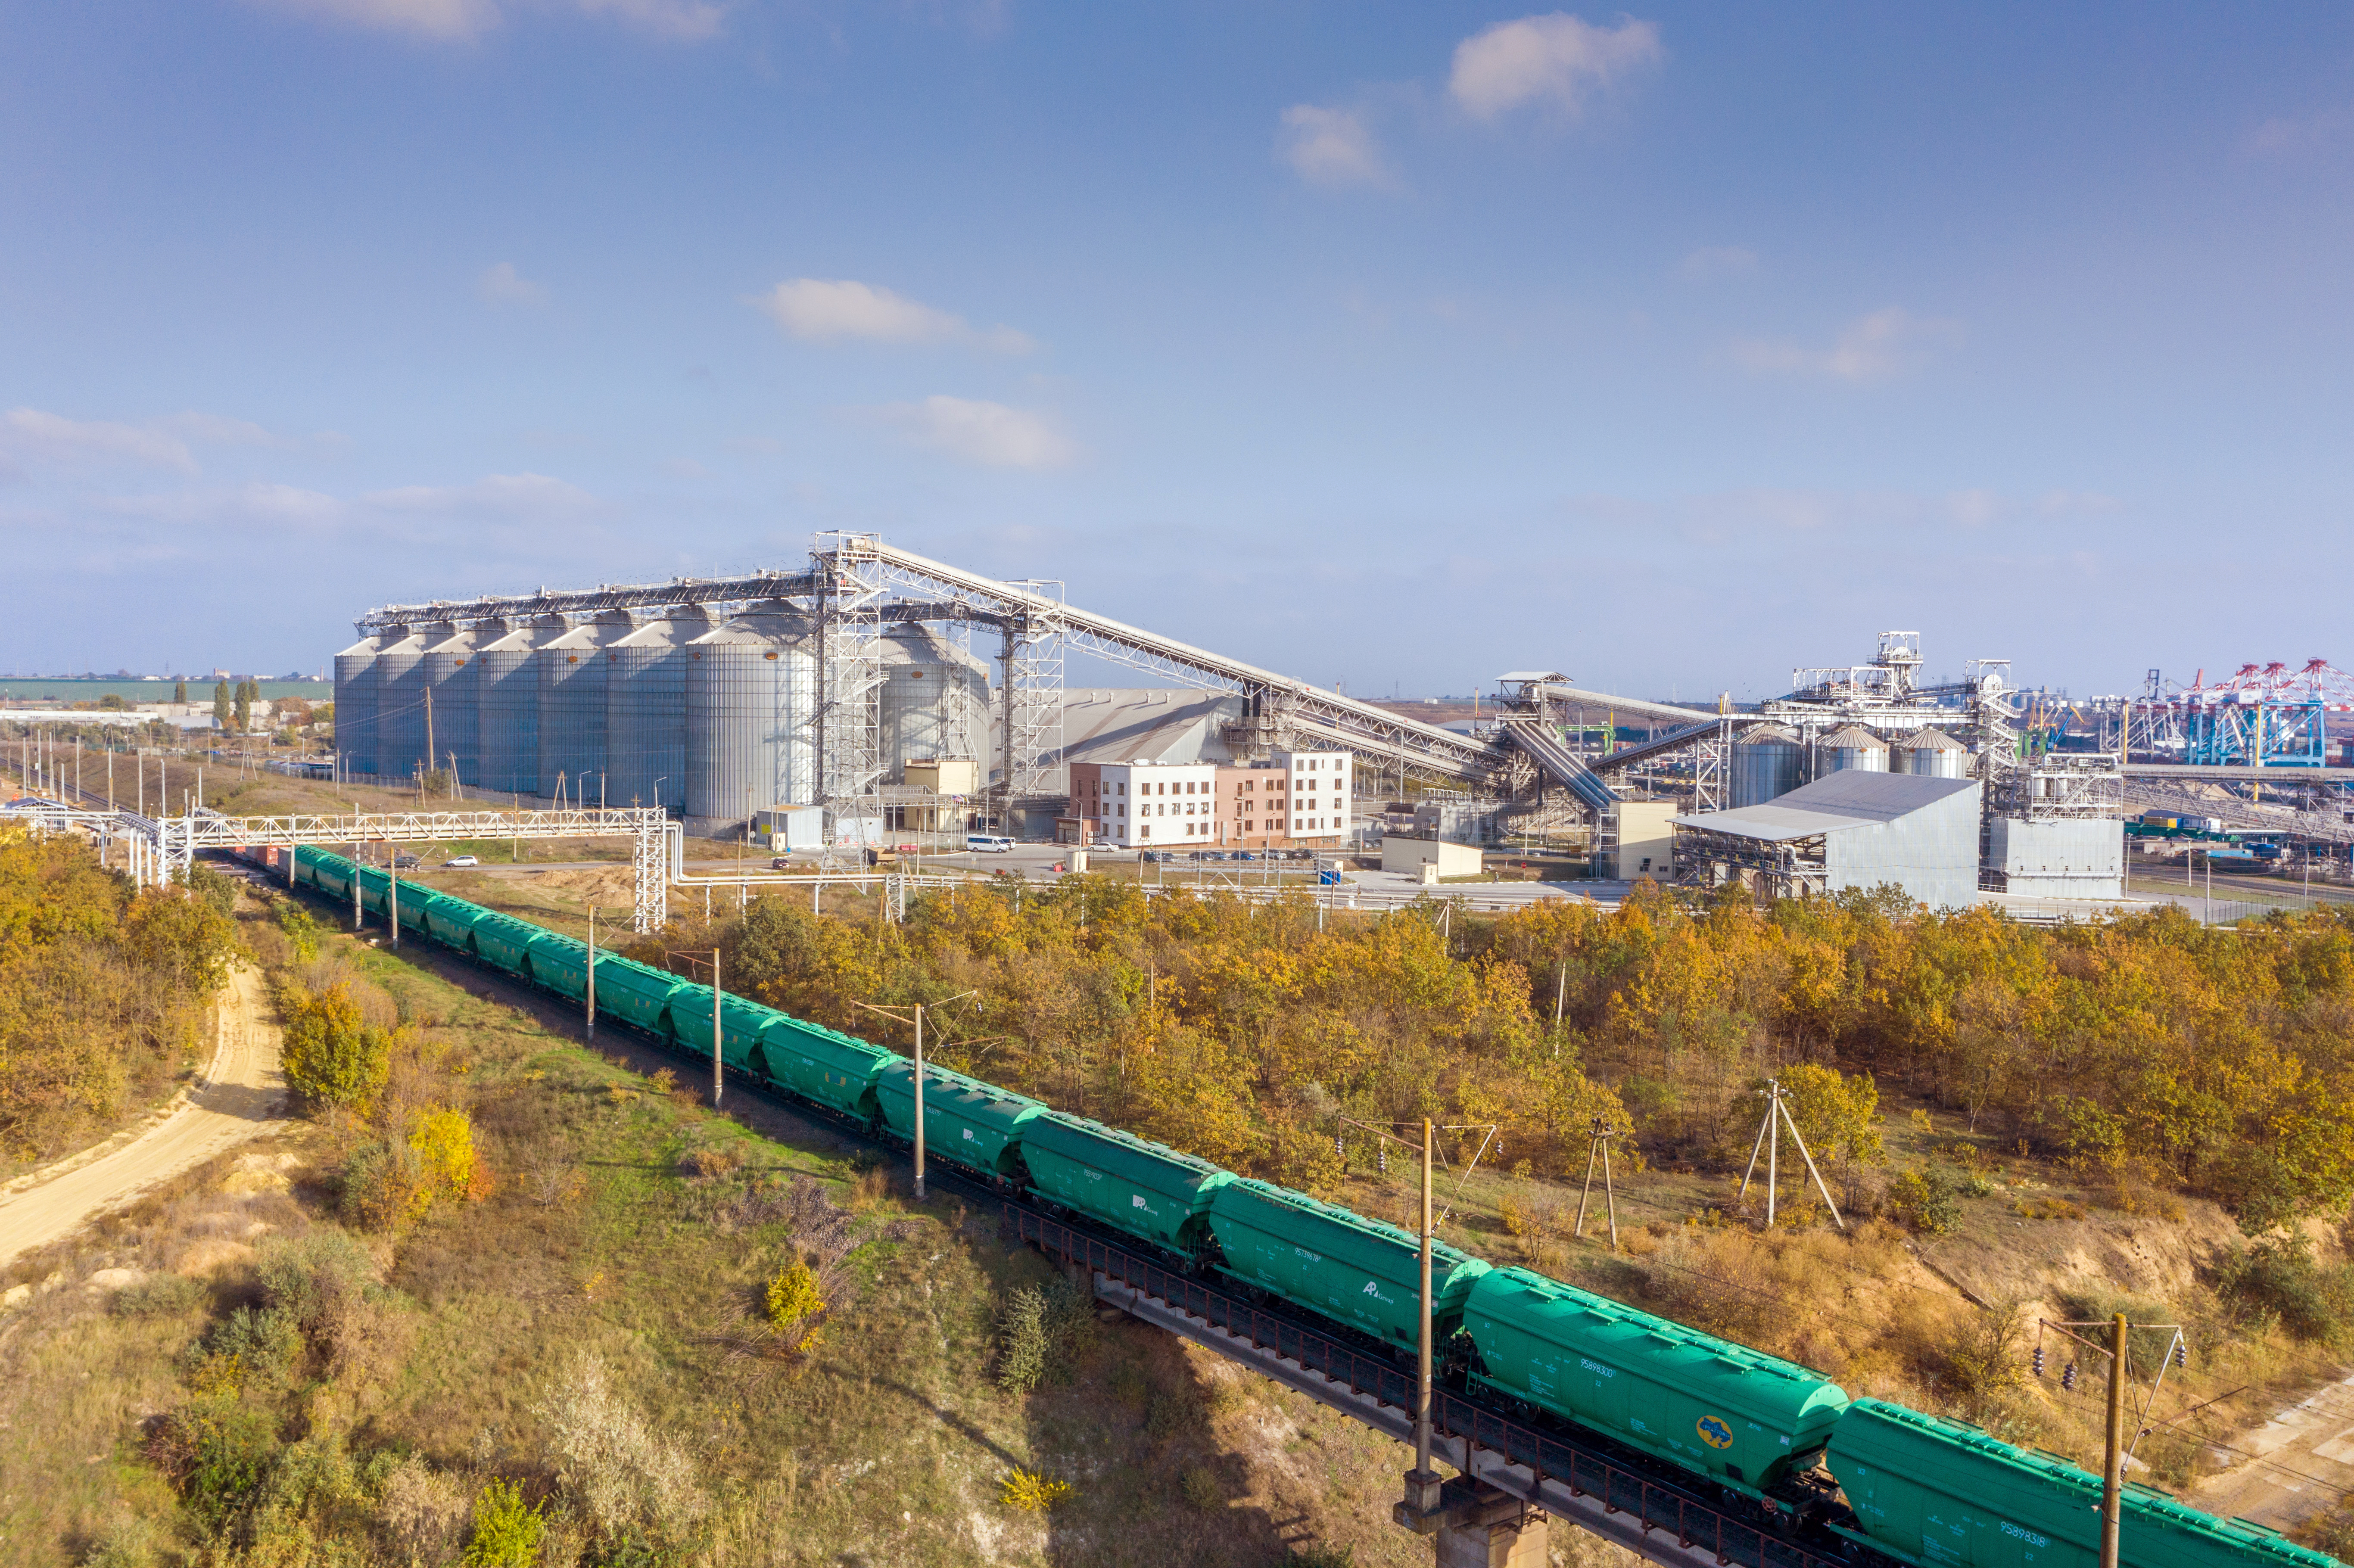 Almost 70% of grain is delivered to the terminal by rail